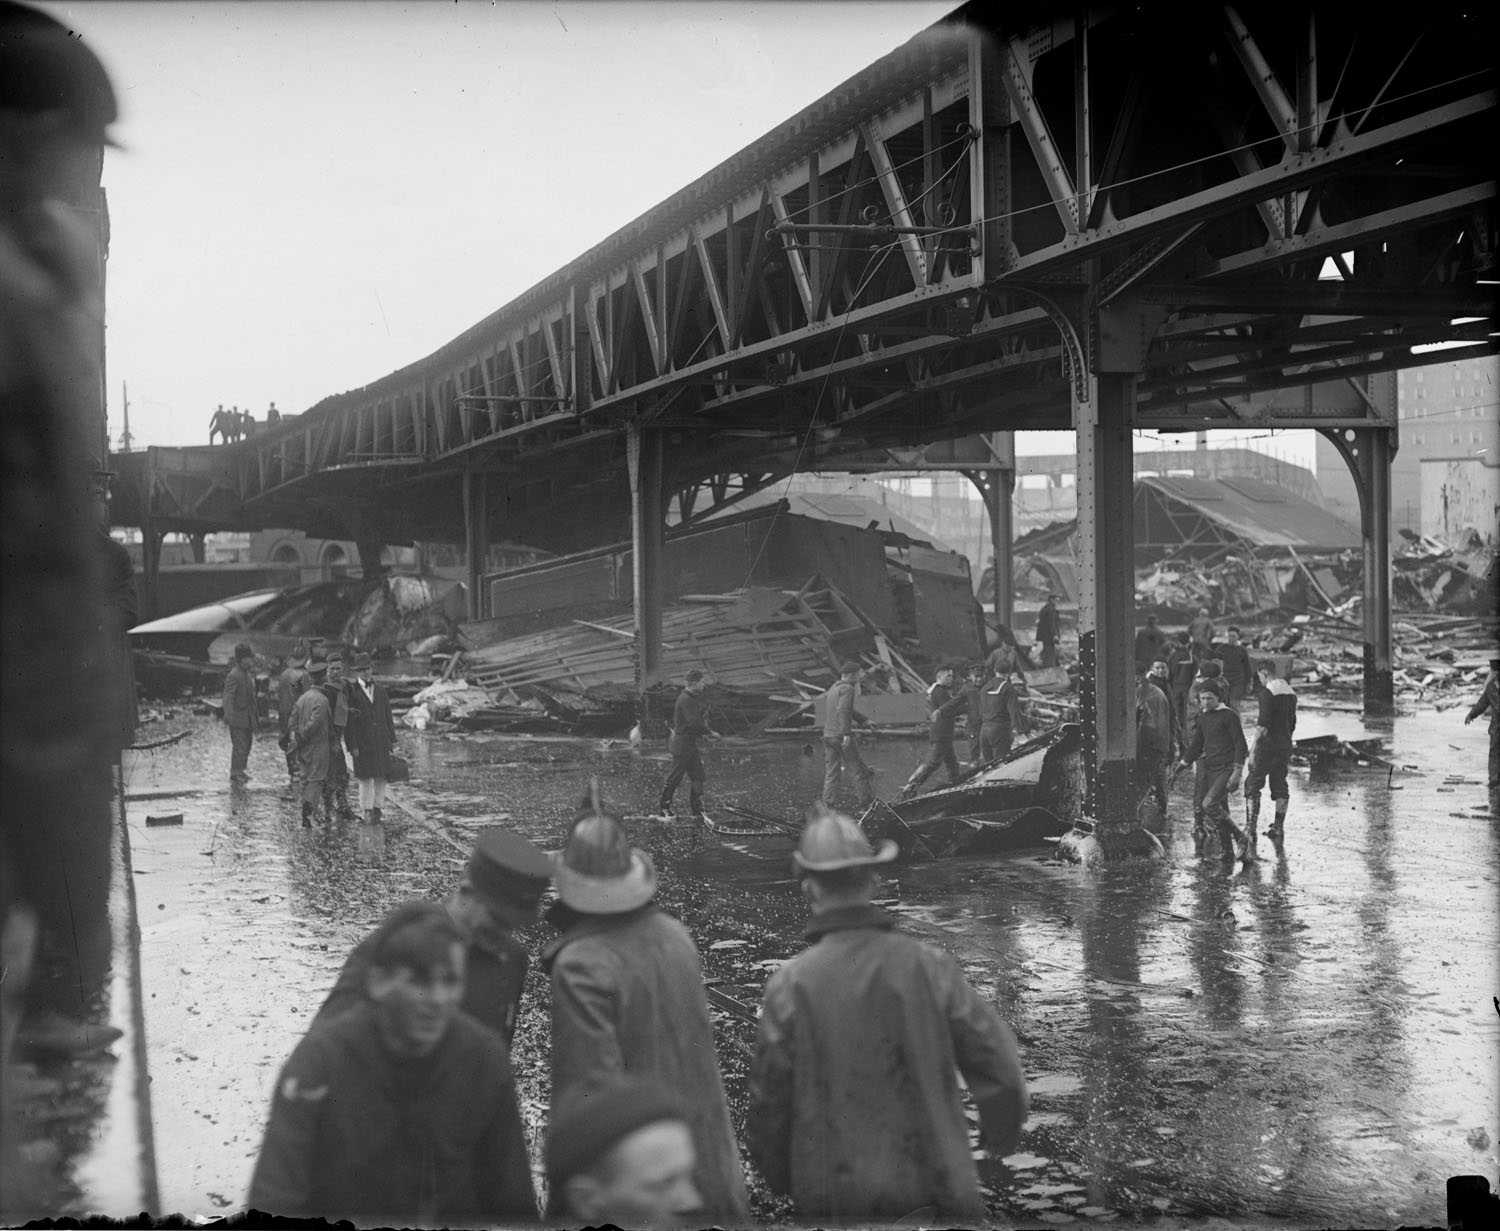 Wreckage under the elevated where many express trucks parked, Molasses Disaster. Photo courtesy of the Boston Public Library, Leslie Jones Collection